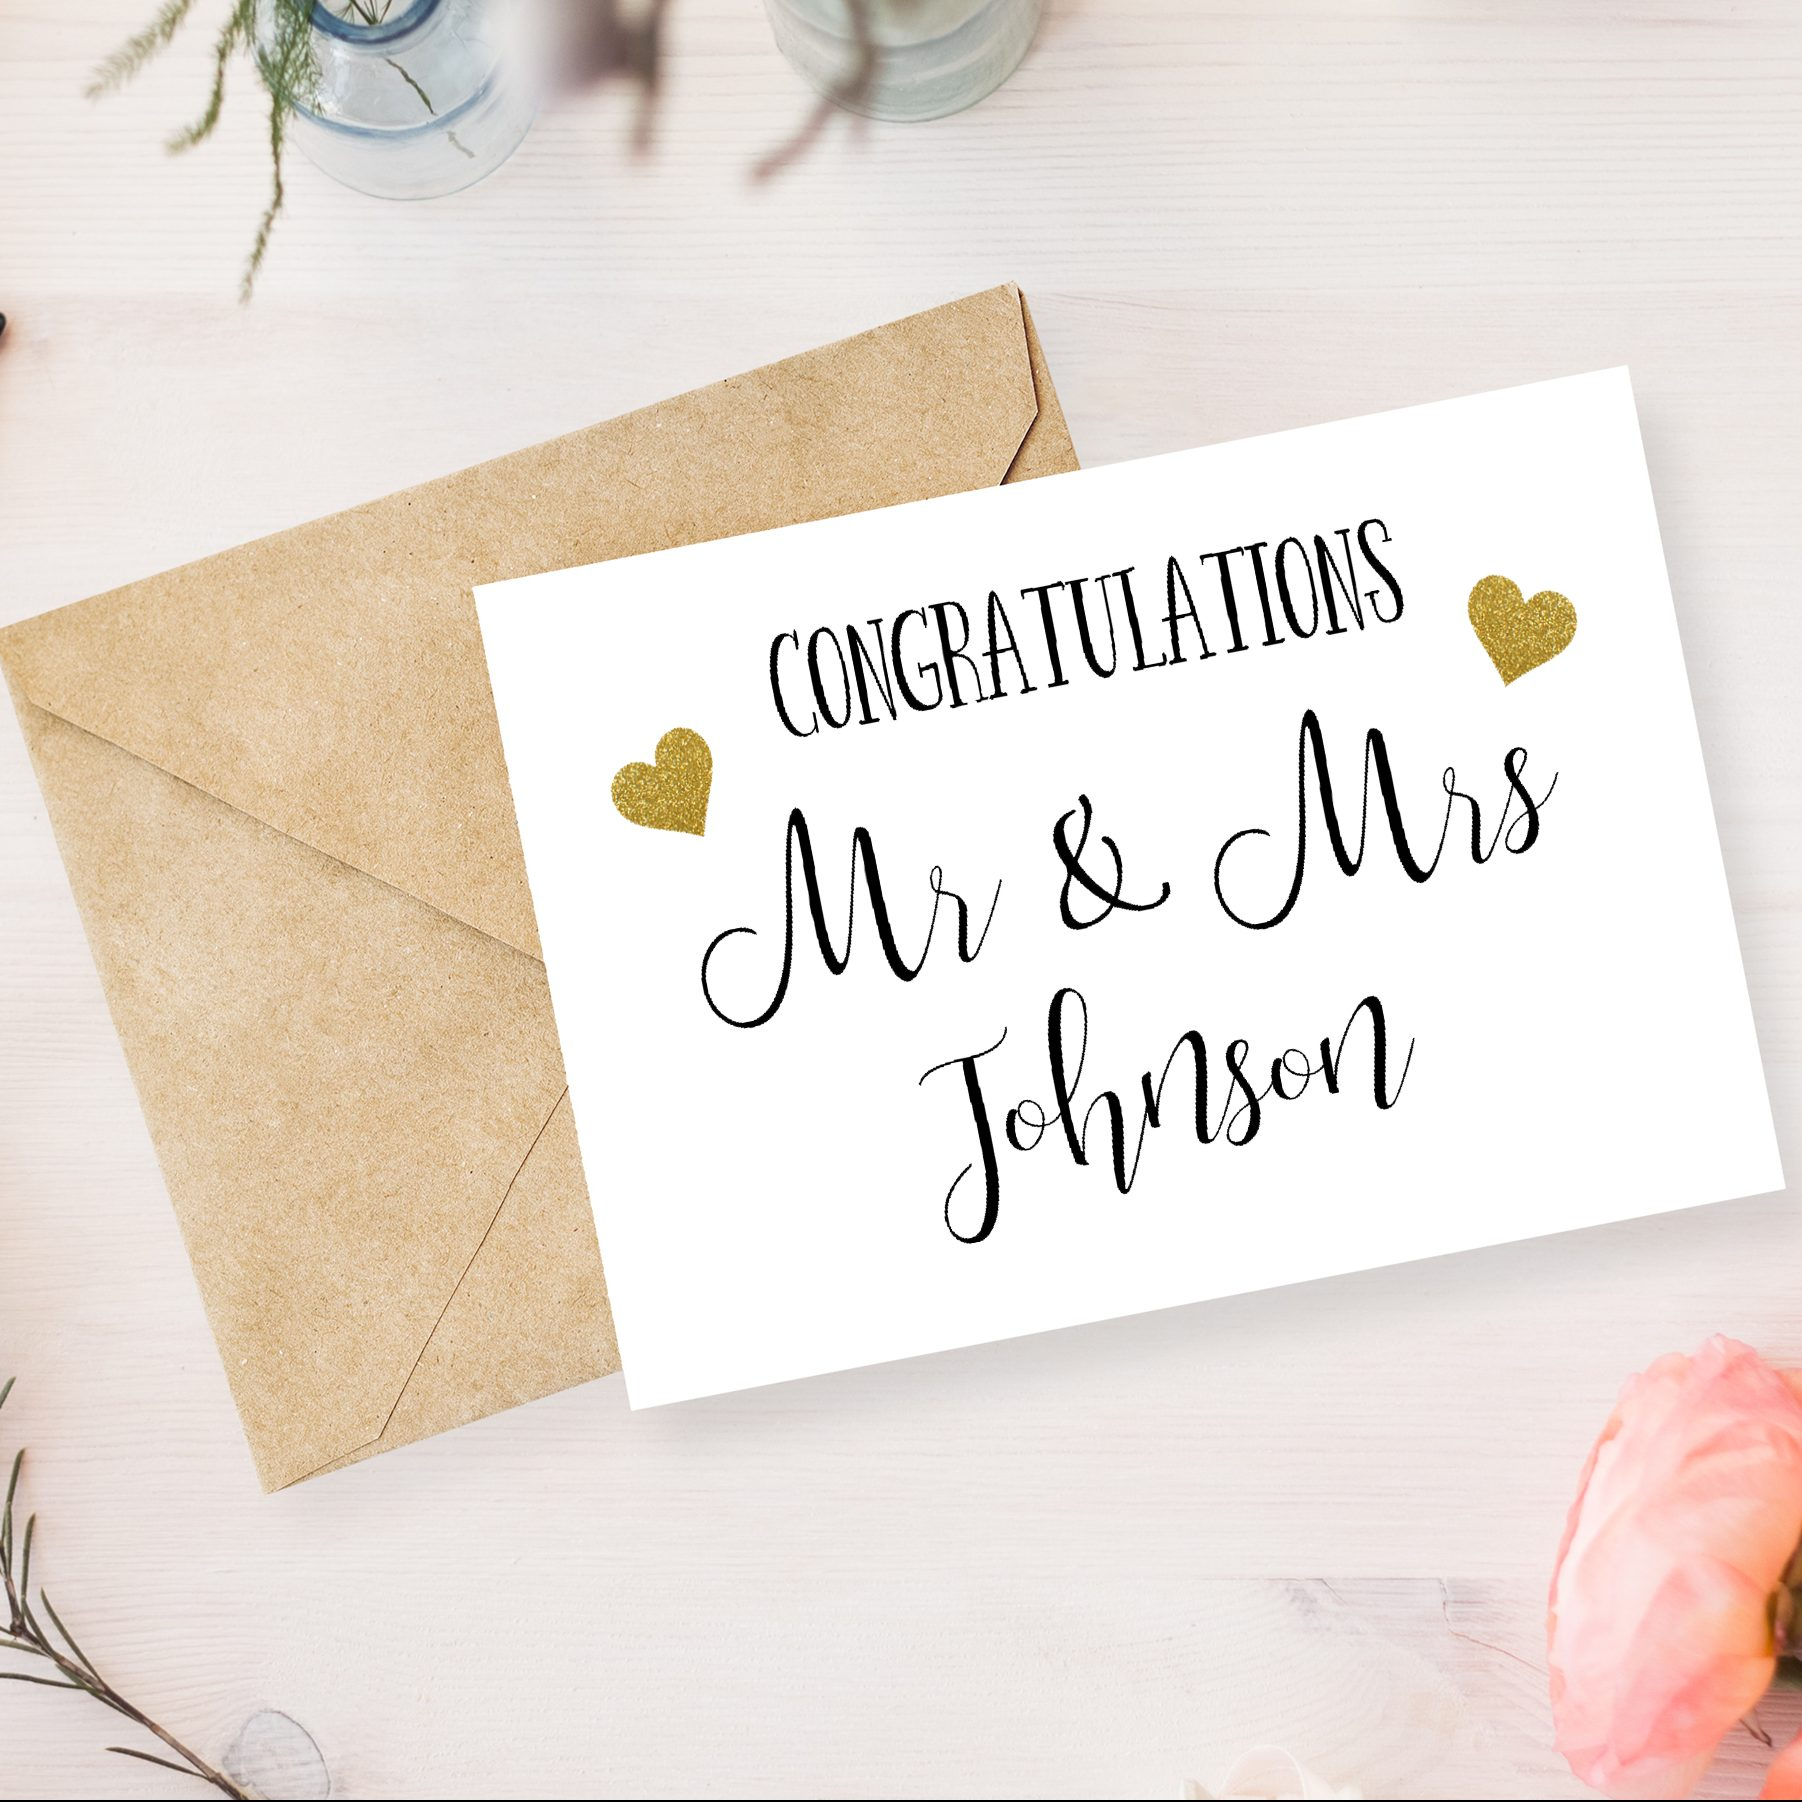 Wedding Gifts Mr And Mrs: Congratulations Mr & Mrs Greetings Card